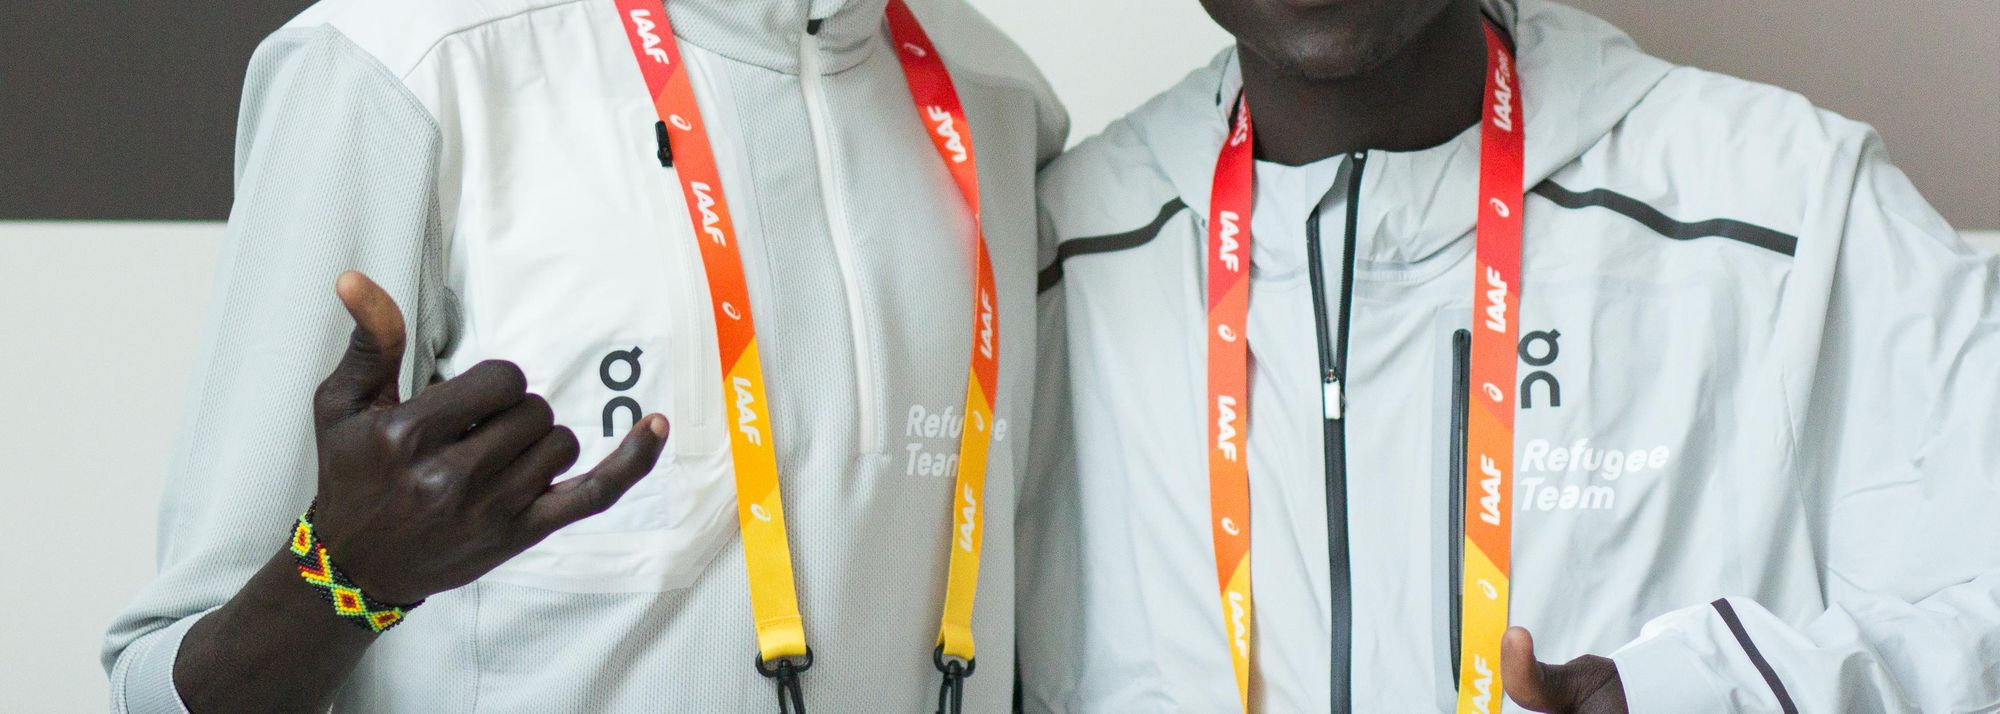 For members of the Athlete Refugee Team, each step they make, whether physical or symbolic, is a big one. The one that Paulo Amotun Lokoro and Ukuk Utho'o Bul are about to take this weekend is so big it leaves them both nearly doubling over in laughter.